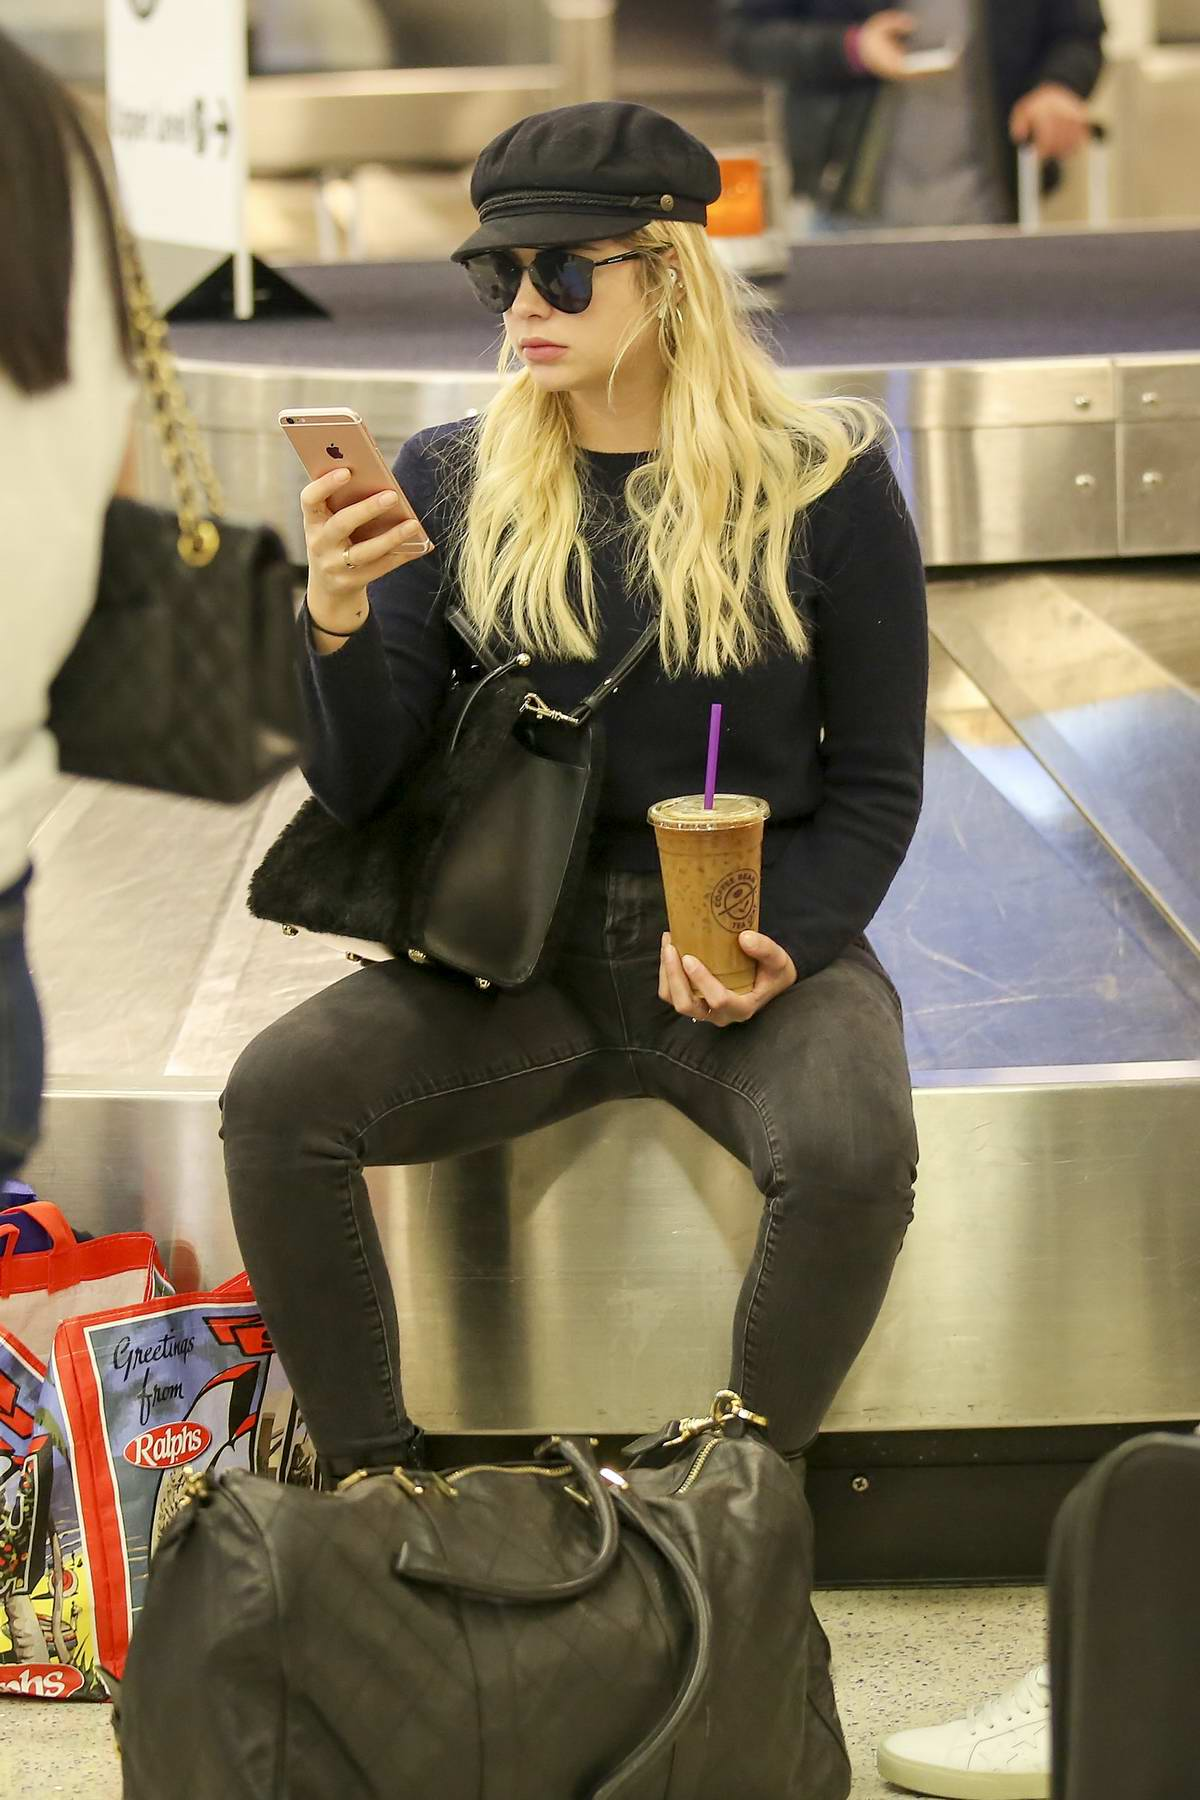 Ashley Benson spotted while waiting for her luggage at LAX airport in Los Angeles